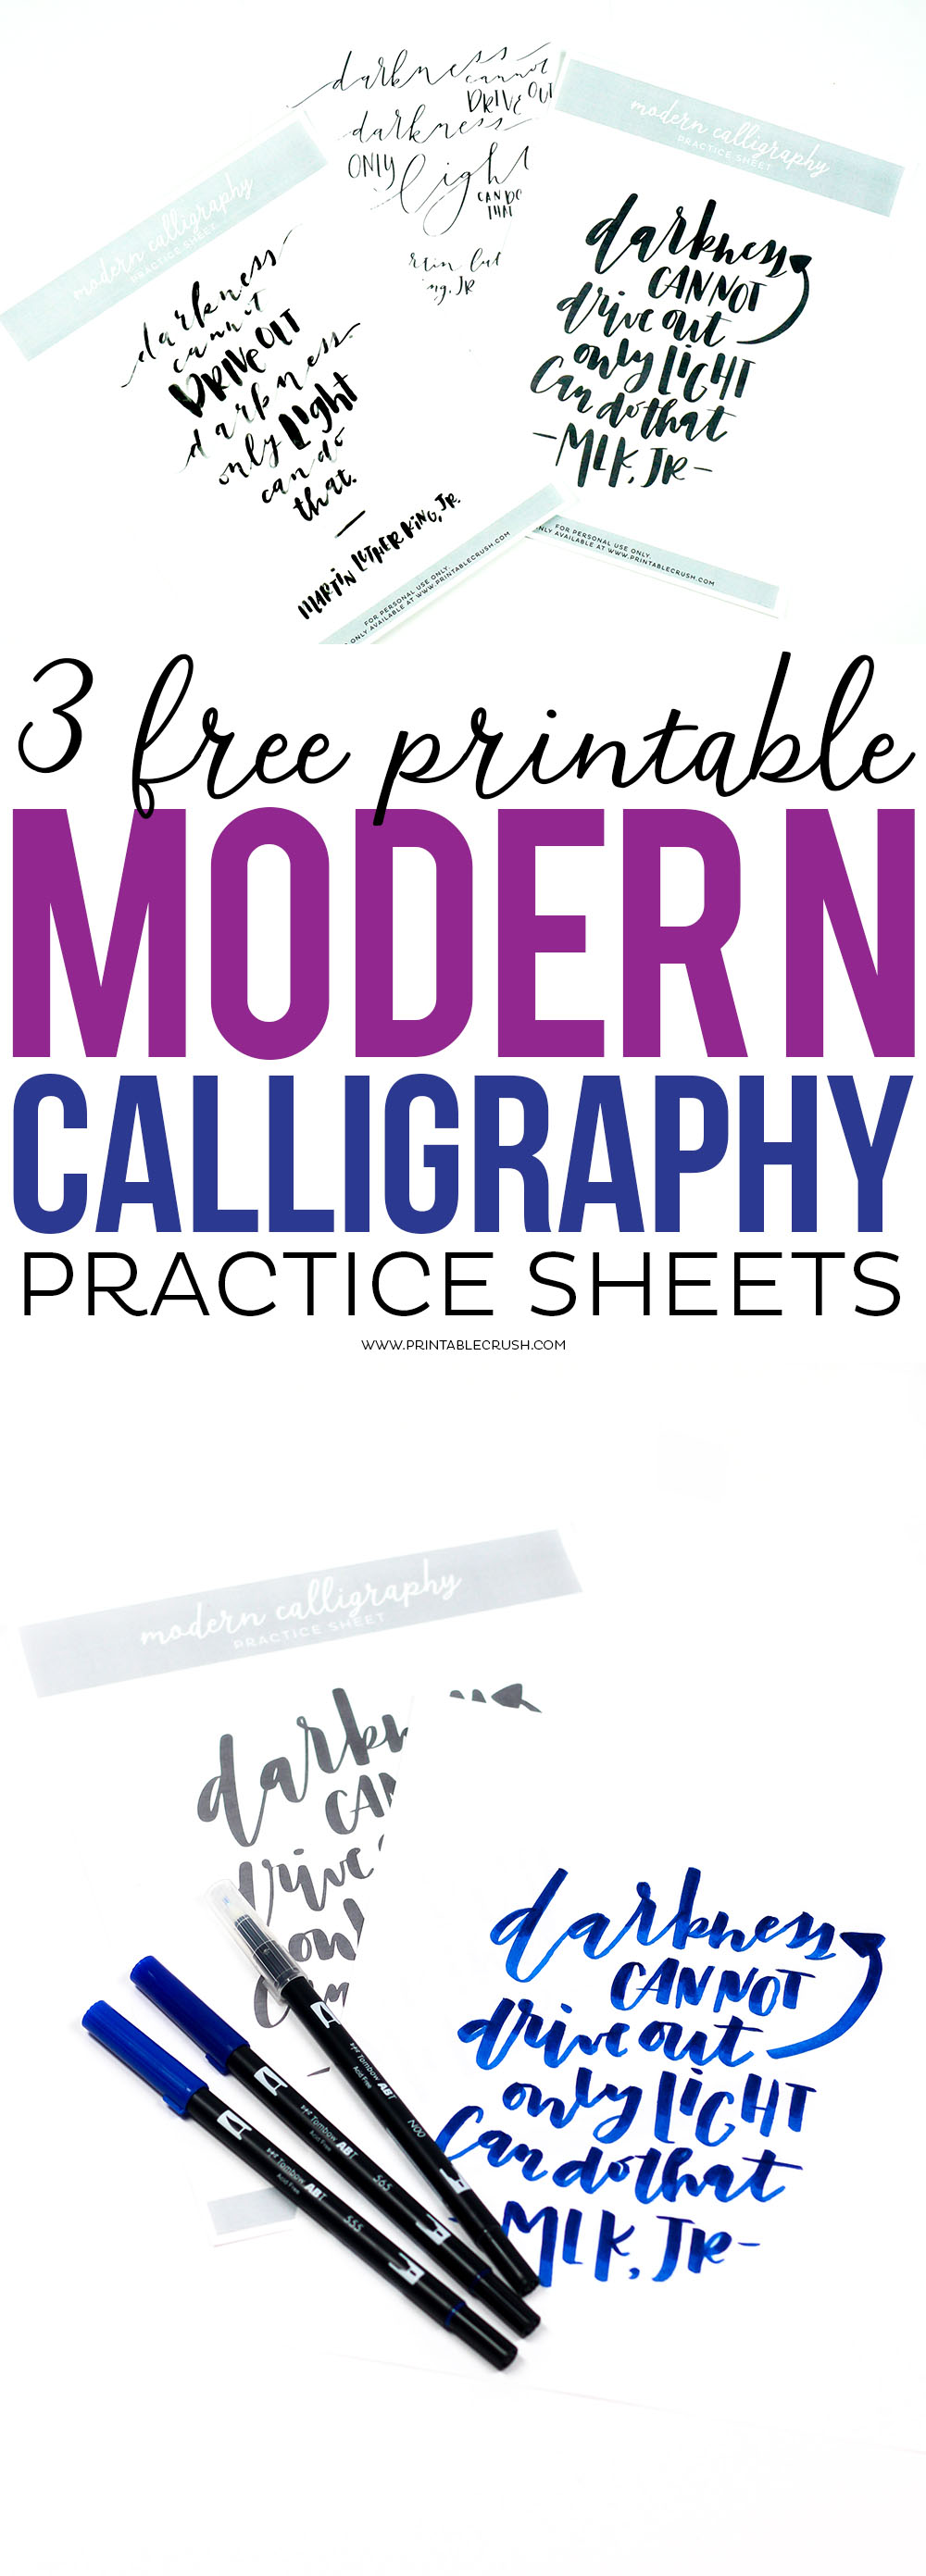 Printable calligraphy practice sheets popflyboys